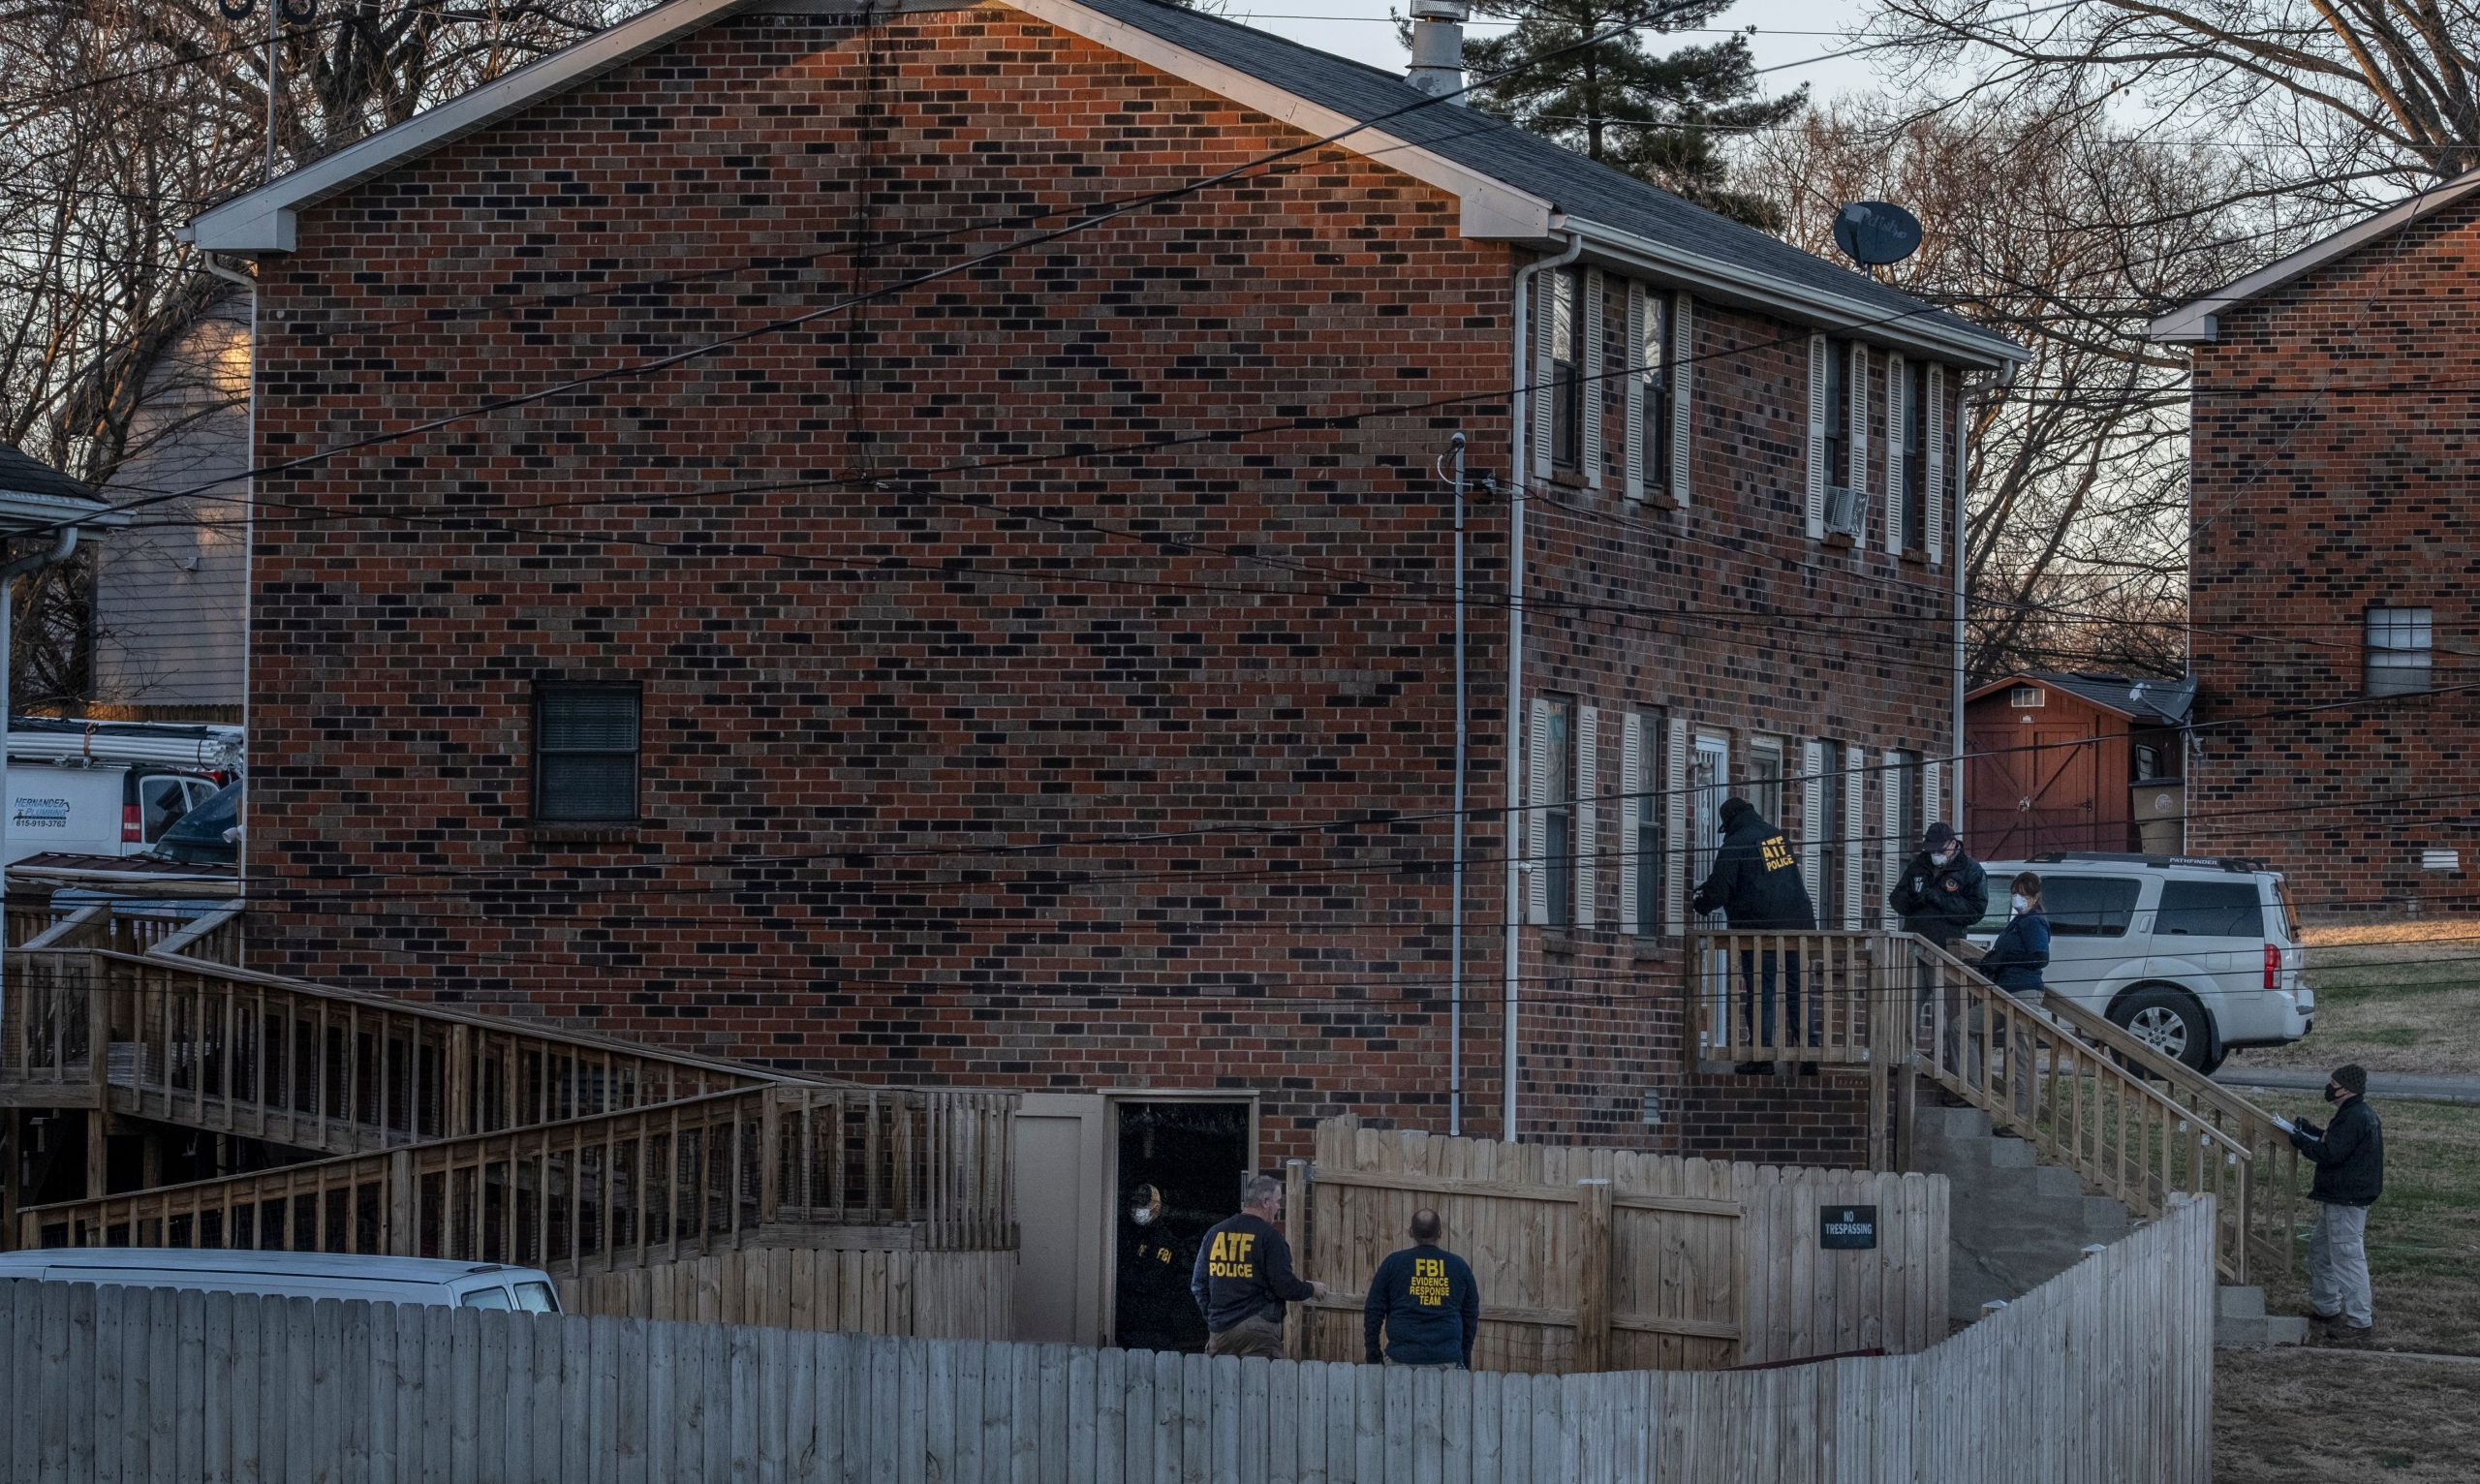 Federal agents enter a house on Bakertown Road in Antioch. (Photo: John Partipilo)